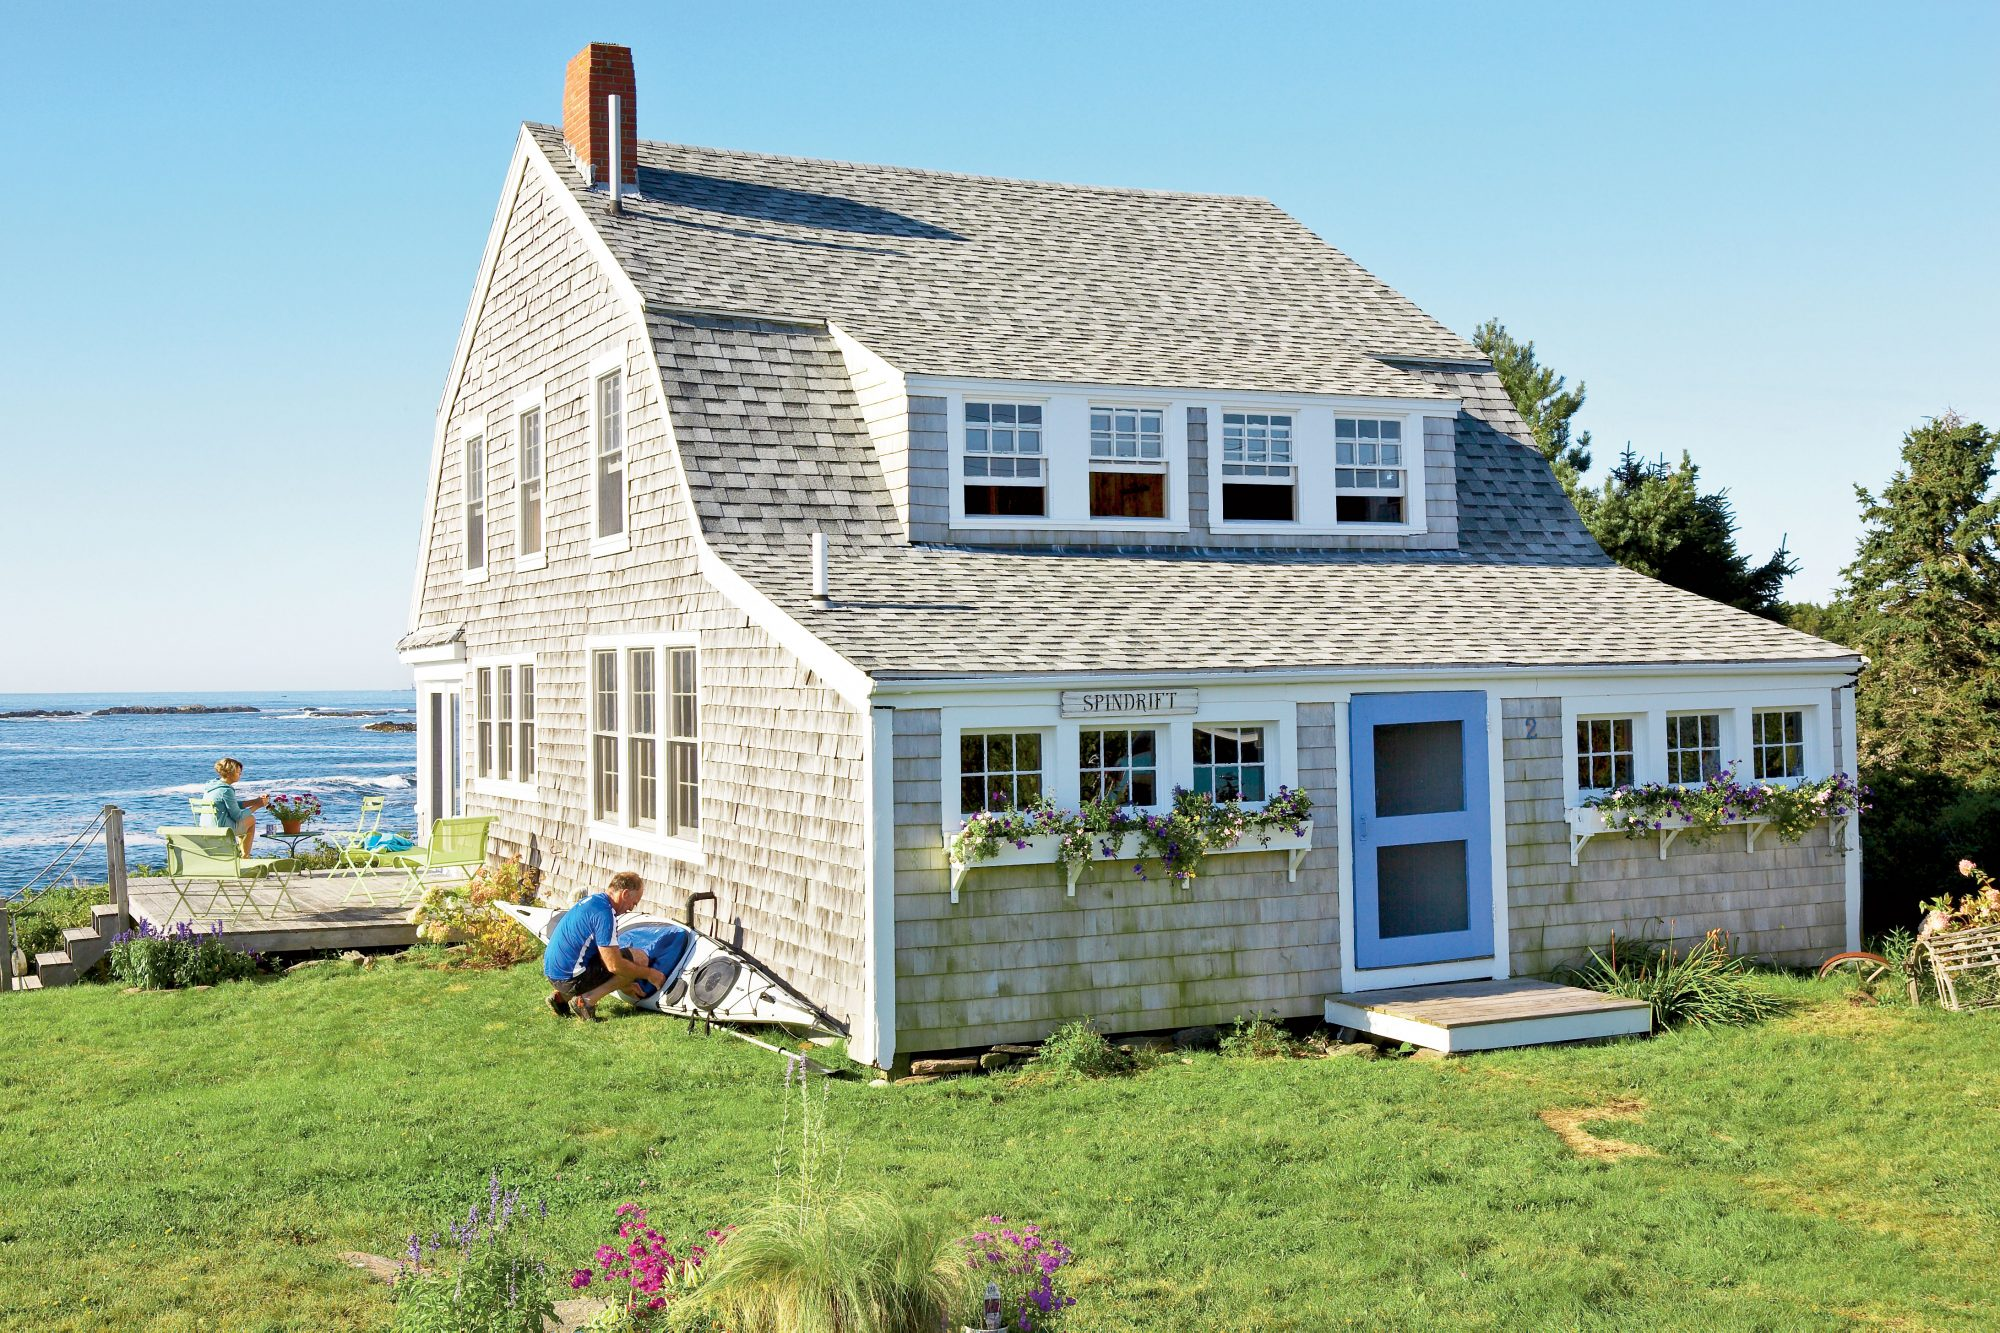 Hal and Mary Quayle fell in love with this 100-year-old cottage on Bailey Island, Maine, and after some simple touch-ups, turned it into a cozy hideaway with thrilling views. They embraced the cottage's quirky character and celebrated its aged-to-perfection charm.